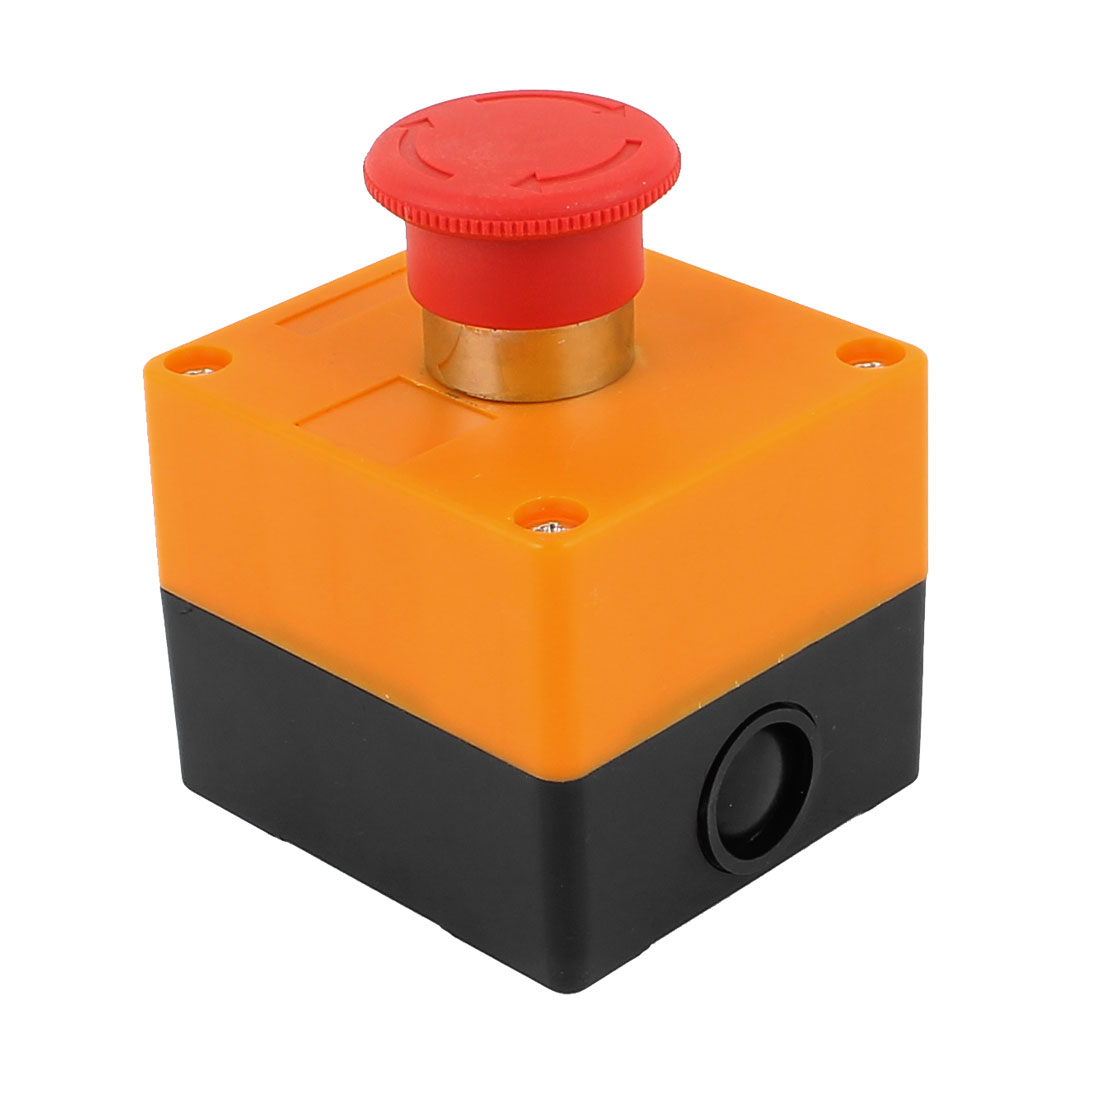 240V 3A Rotary Reset Red Mushroom Head Emergency Stop Pushbutton Switch